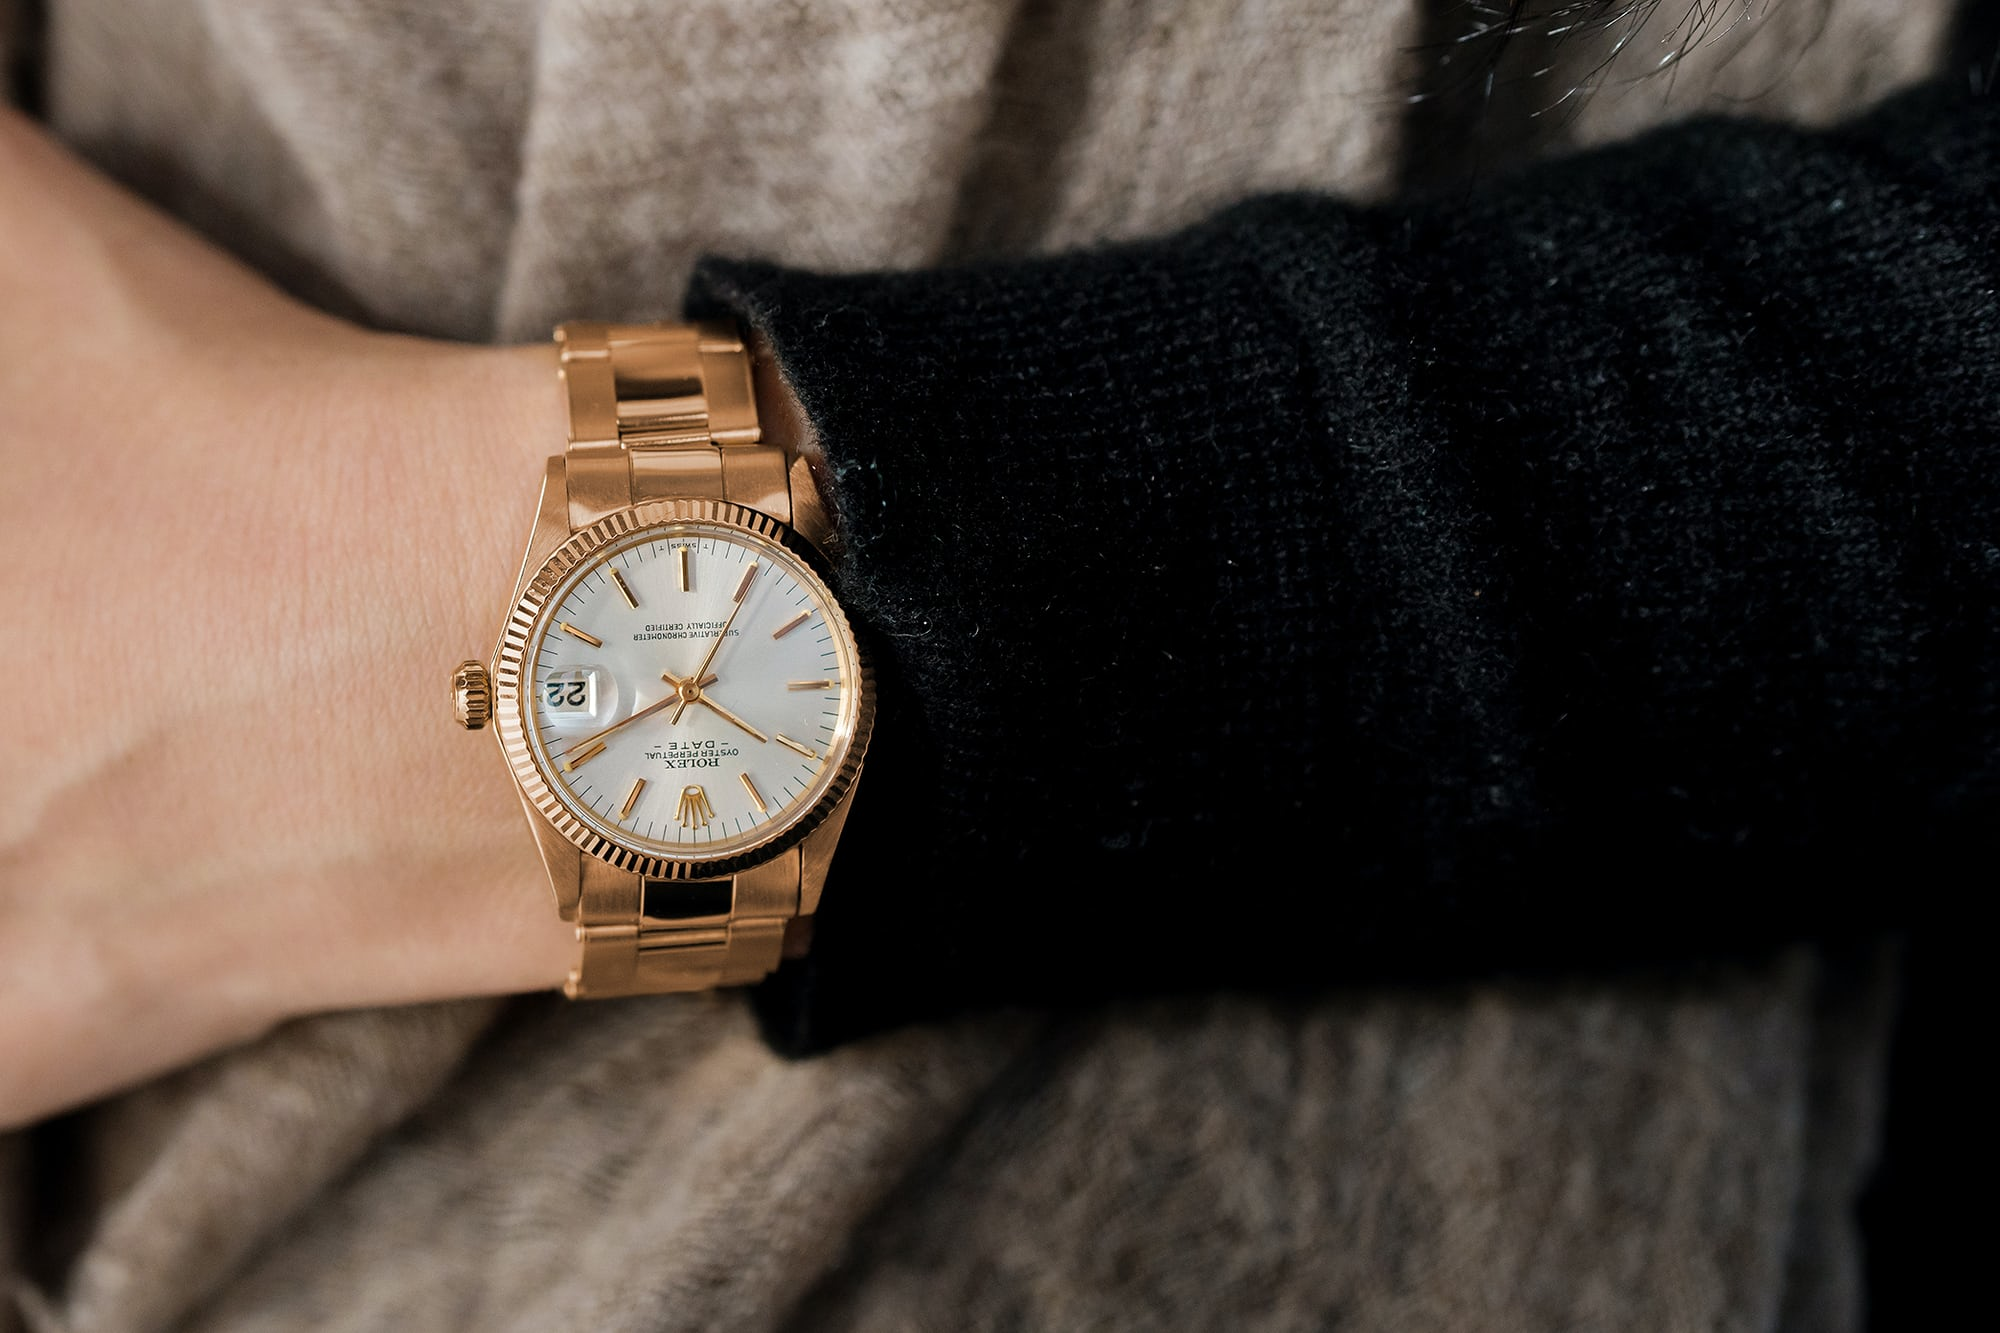 """<p><a href=""""https://shop.hodinkee.com/products/1972-rolex-oyster-perpetual-date-mid-size-ref-6627-in-18k-rose-gold"""" rel=""""noopener"""" target=""""_blank""""><u>1972 Rolex Oyster Perpetual Date 'Mid Size' Ref. 6627 In 18K Rose Gold</u></a></p>"""